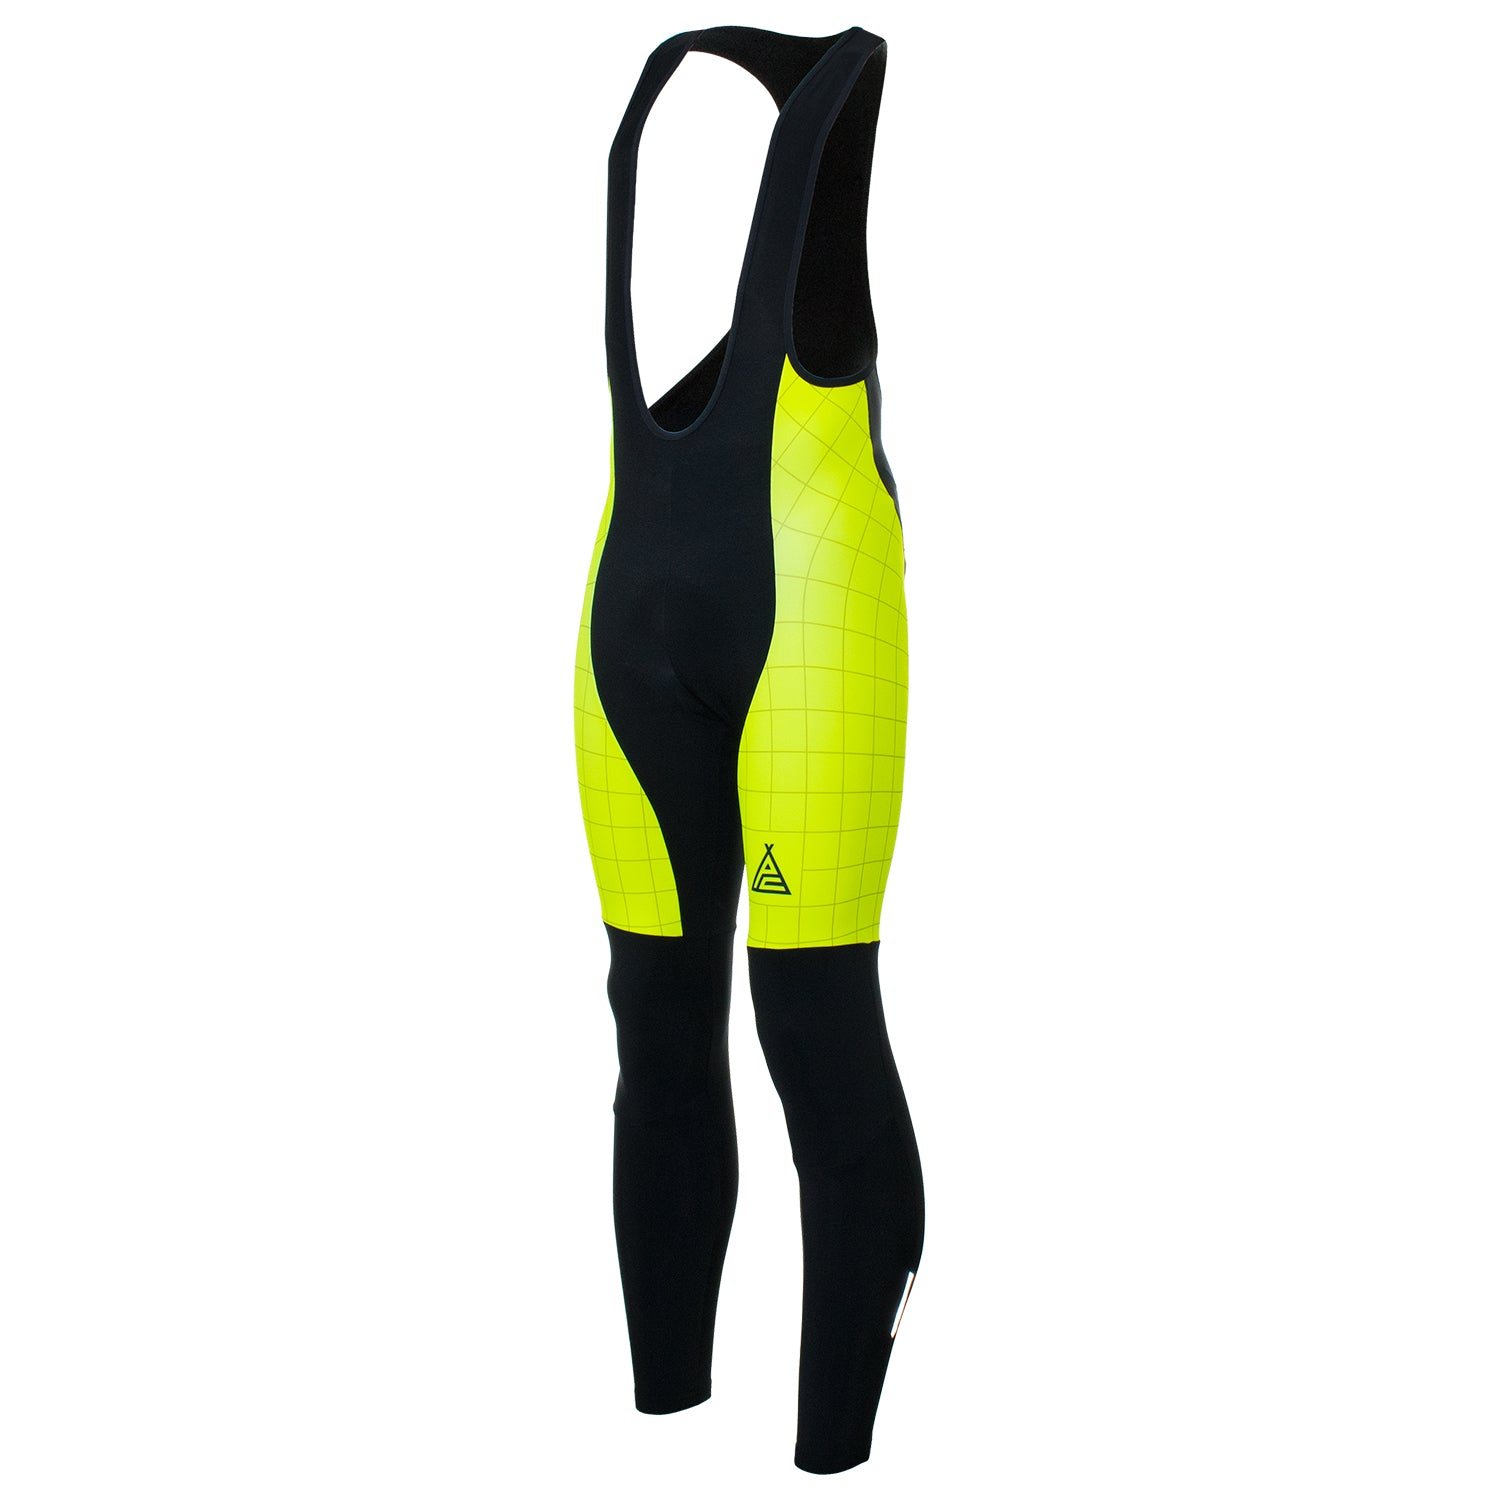 Prendas Ciclismo VIRTUS Winter Bibtights